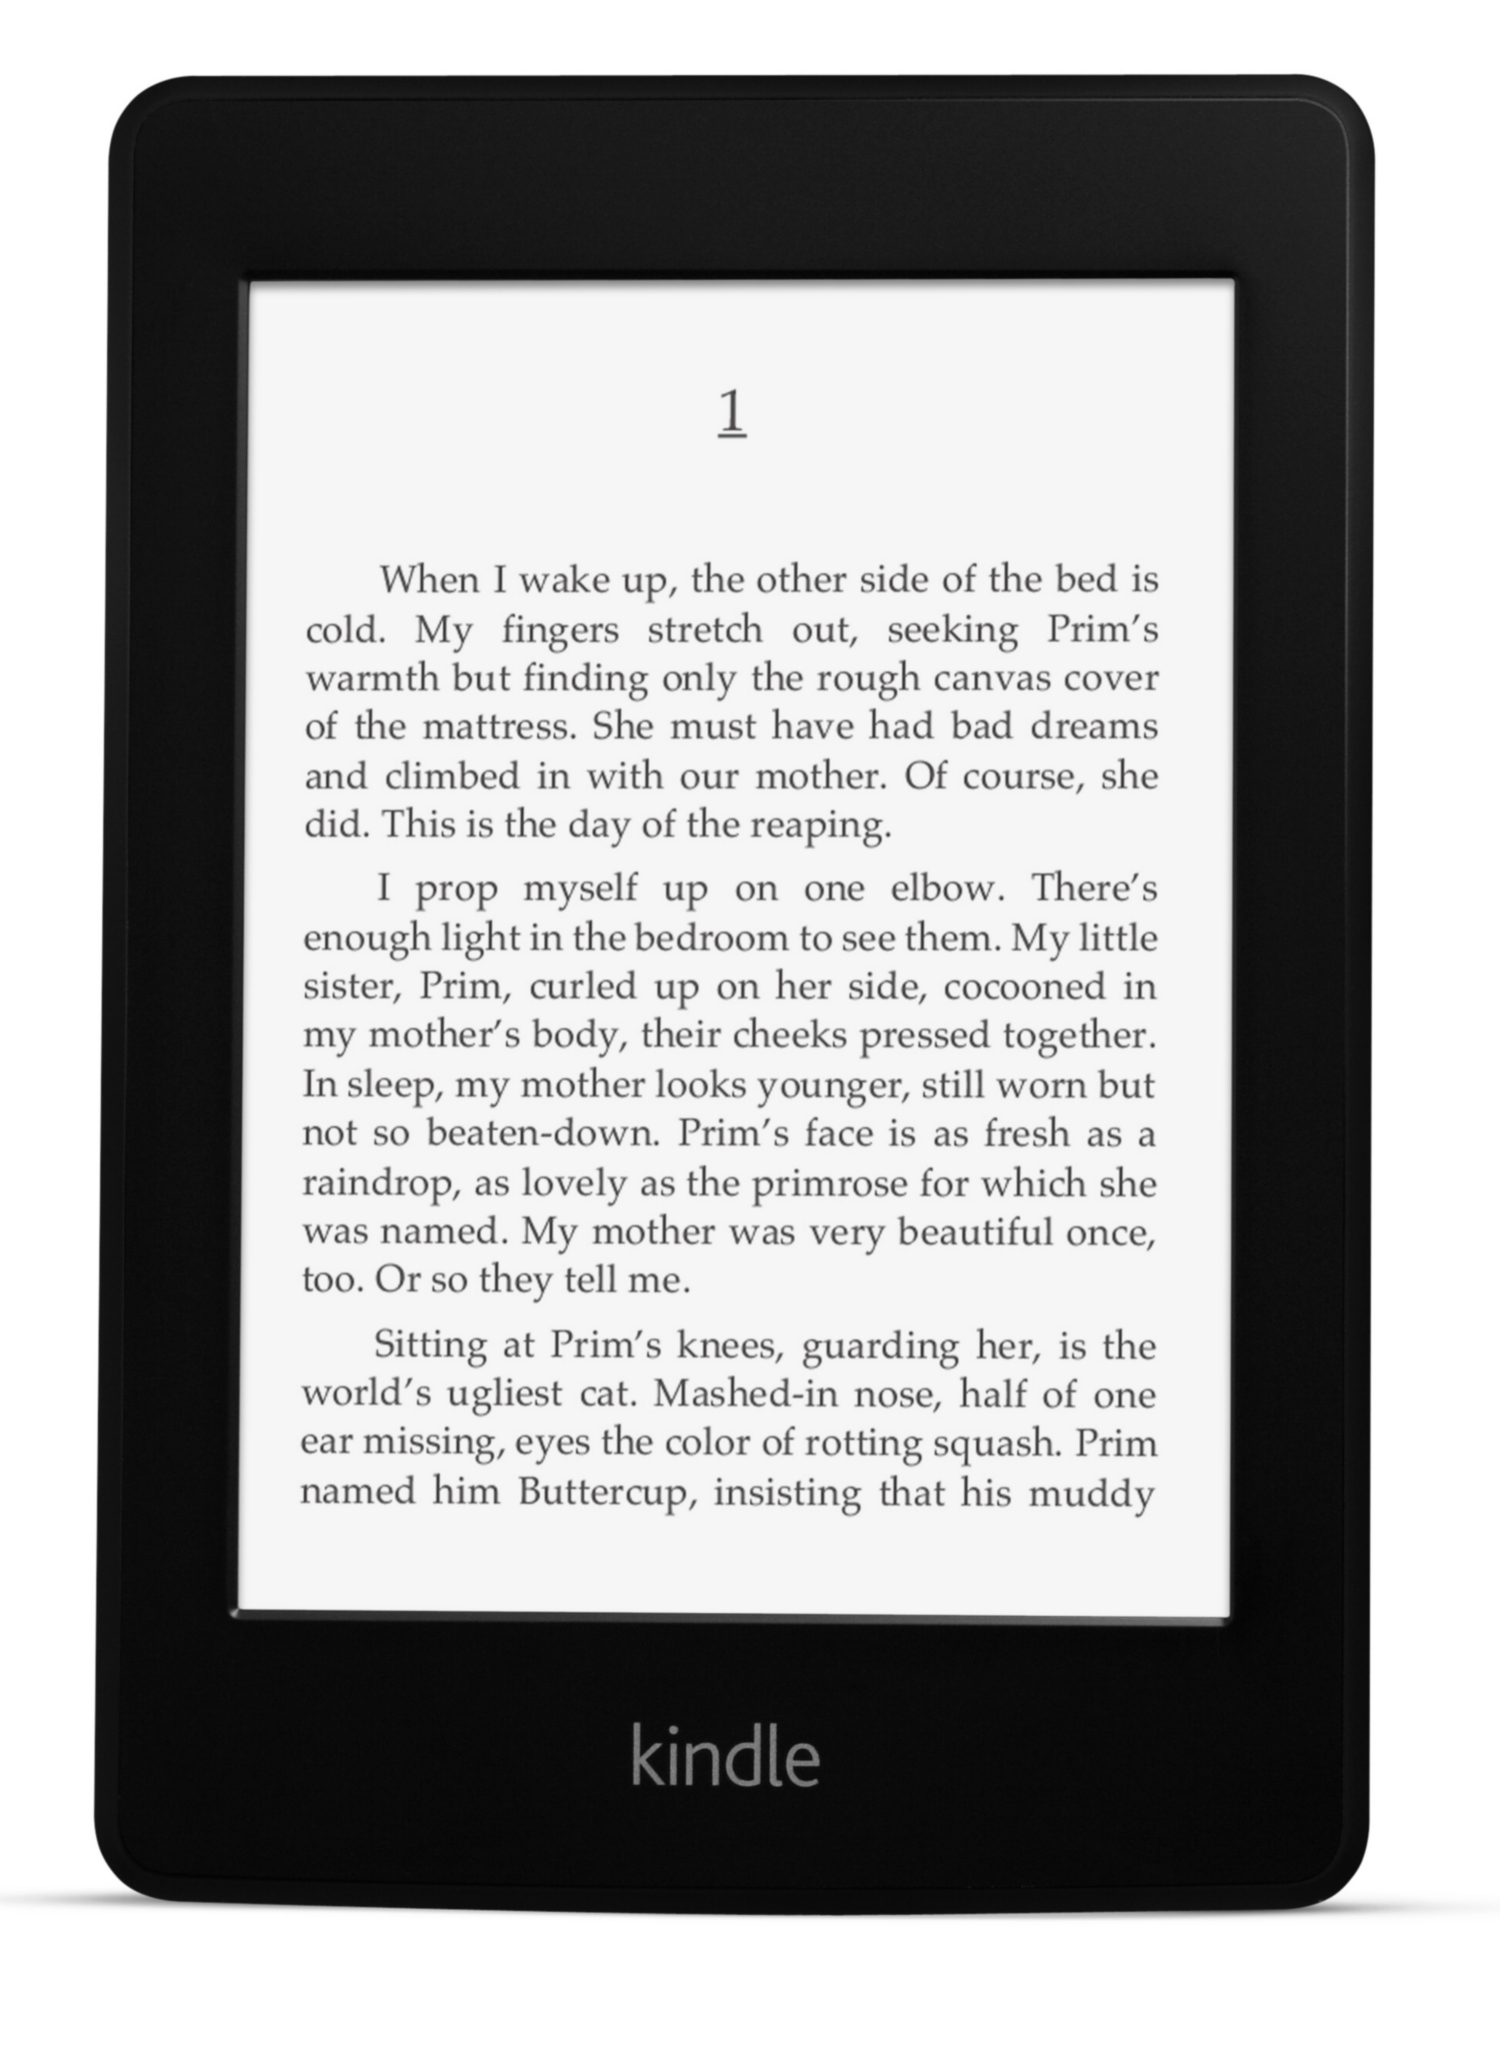 kindle fire amazons strategy essay The kindle fire was released on november 15, 2011 by amazon it's a tablet computer, and it's the last version of kindle up to date the product its dimensions.